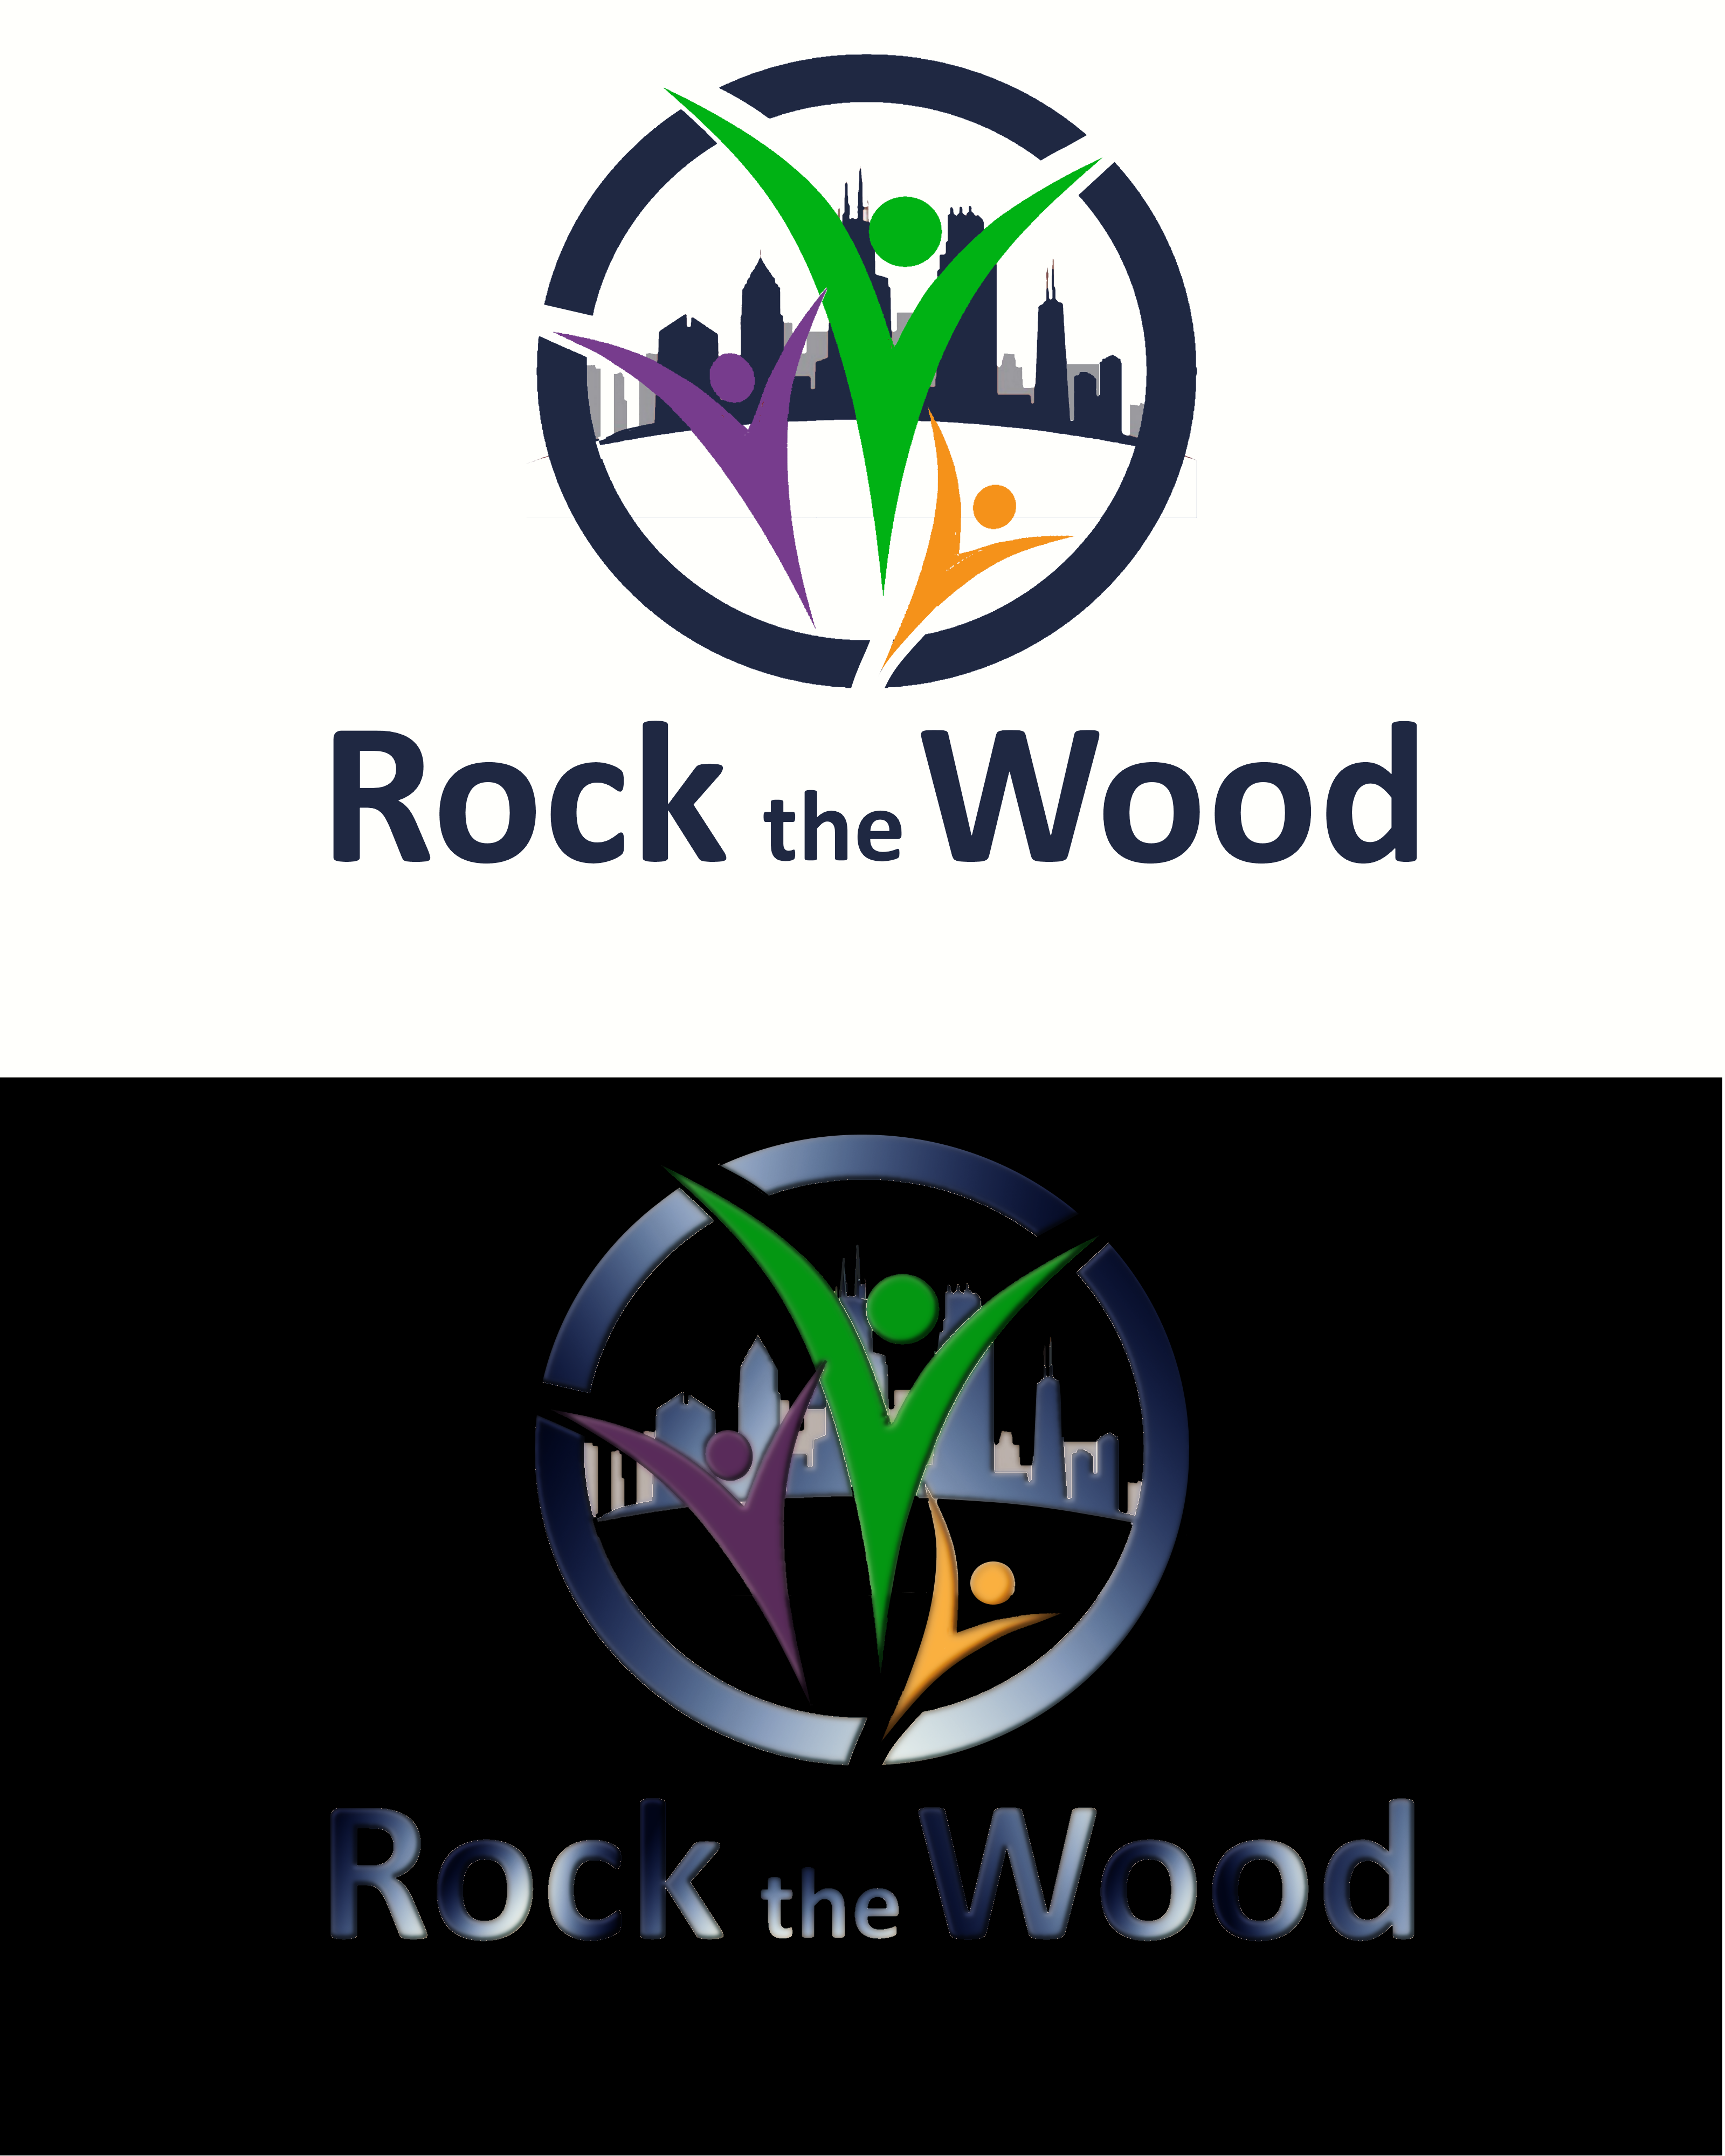 Logo Design by Roberto Bassi - Entry No. 85 in the Logo Design Contest New Logo Design for Rock the Wood.